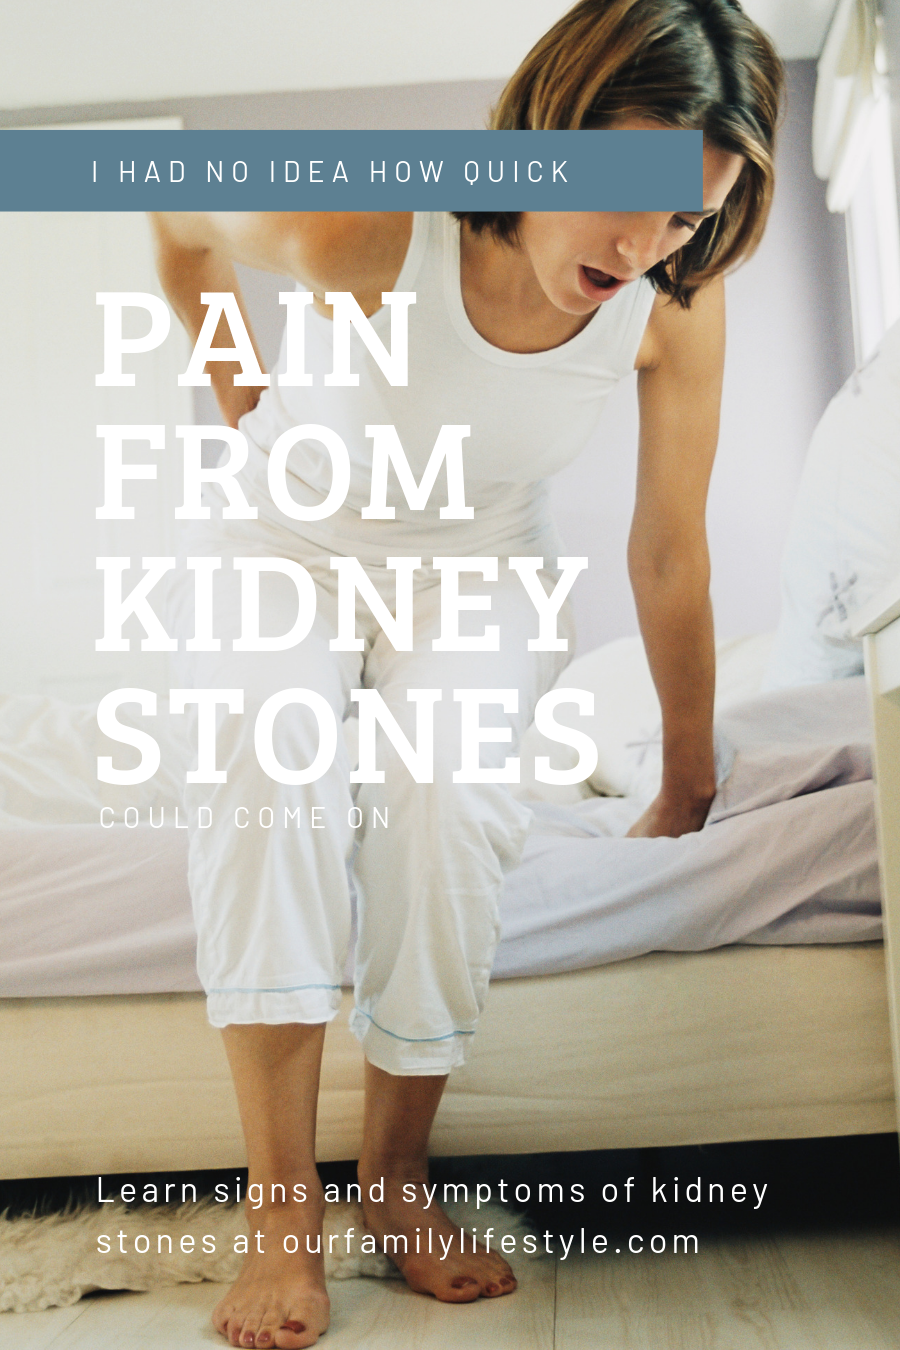 I Had No Idea How Quick Pain from Kidney Stones Could Come On